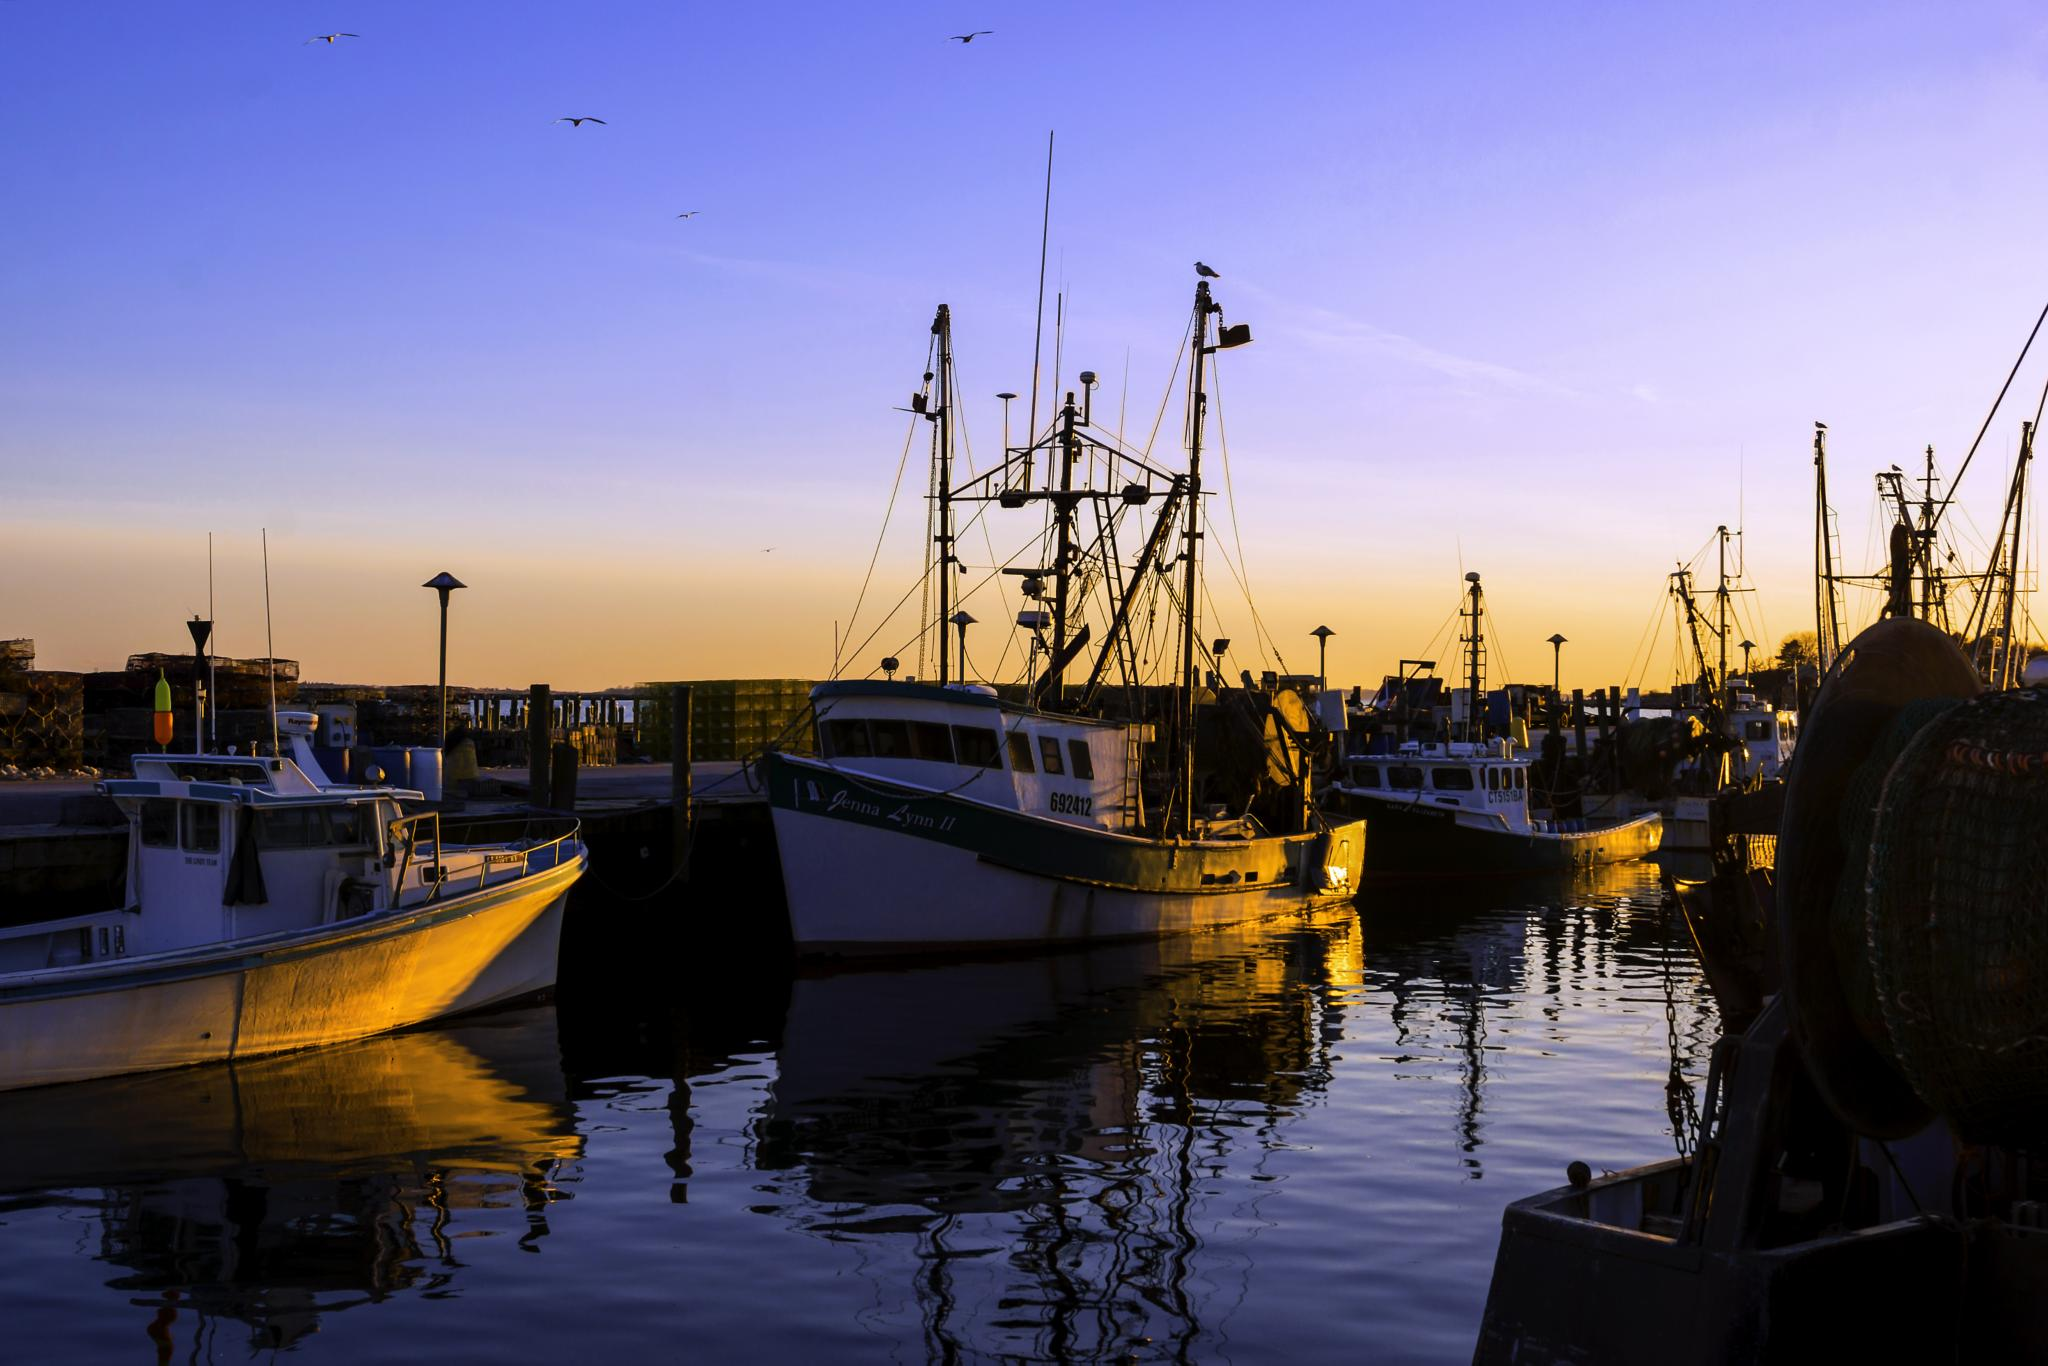 Evening At The Dock 4 by JoeGeraci